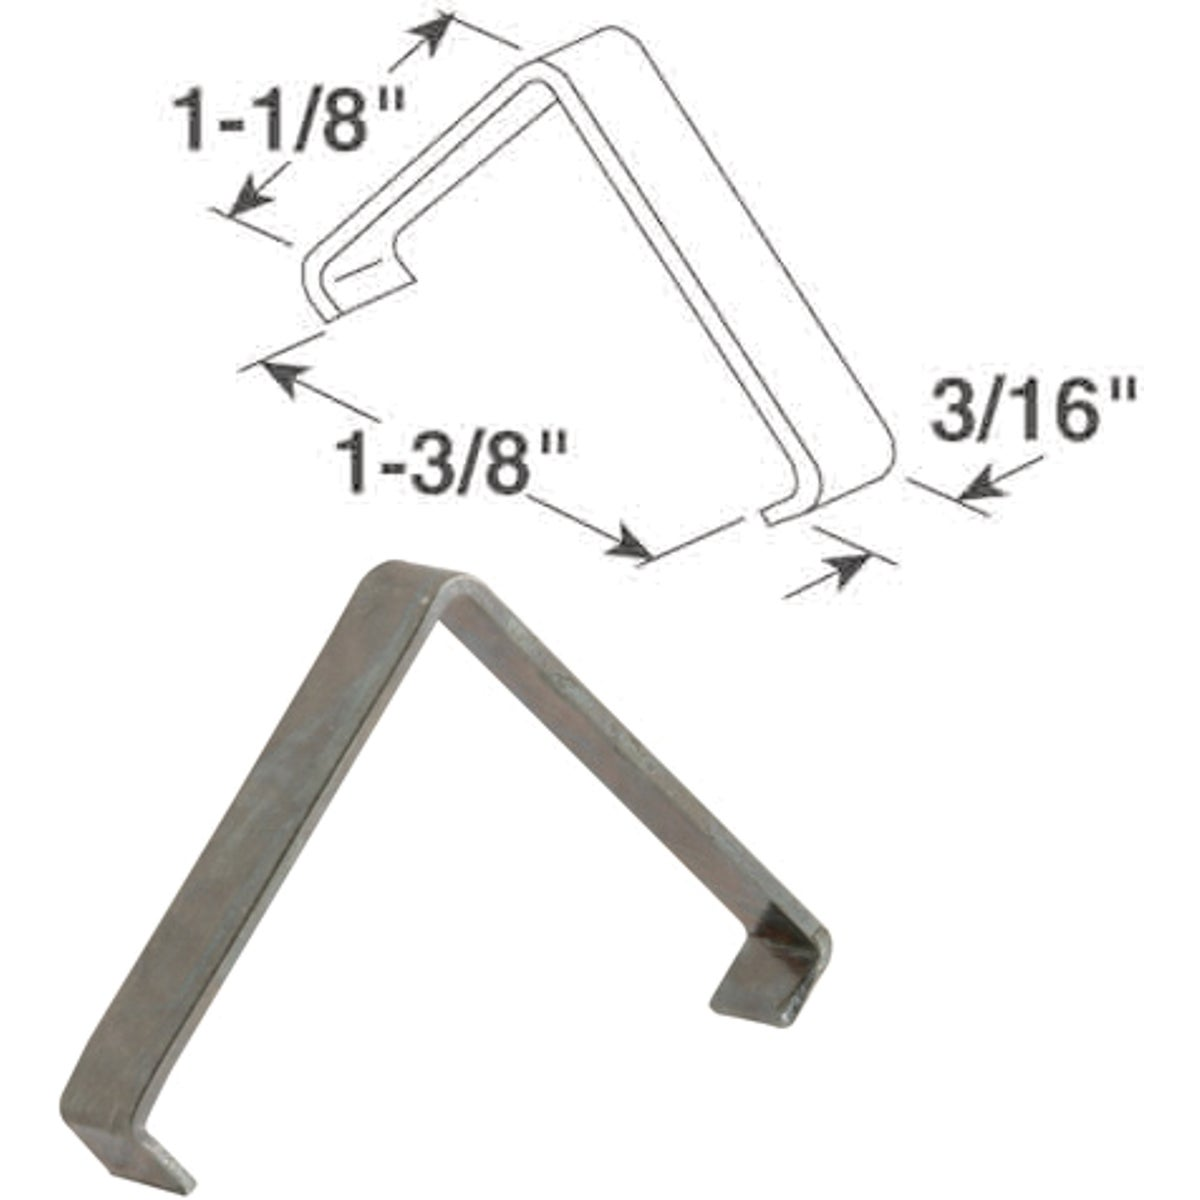 1-1/8X1-3/8X3/16 IN CLIP - PL14871 by Prime Line Products